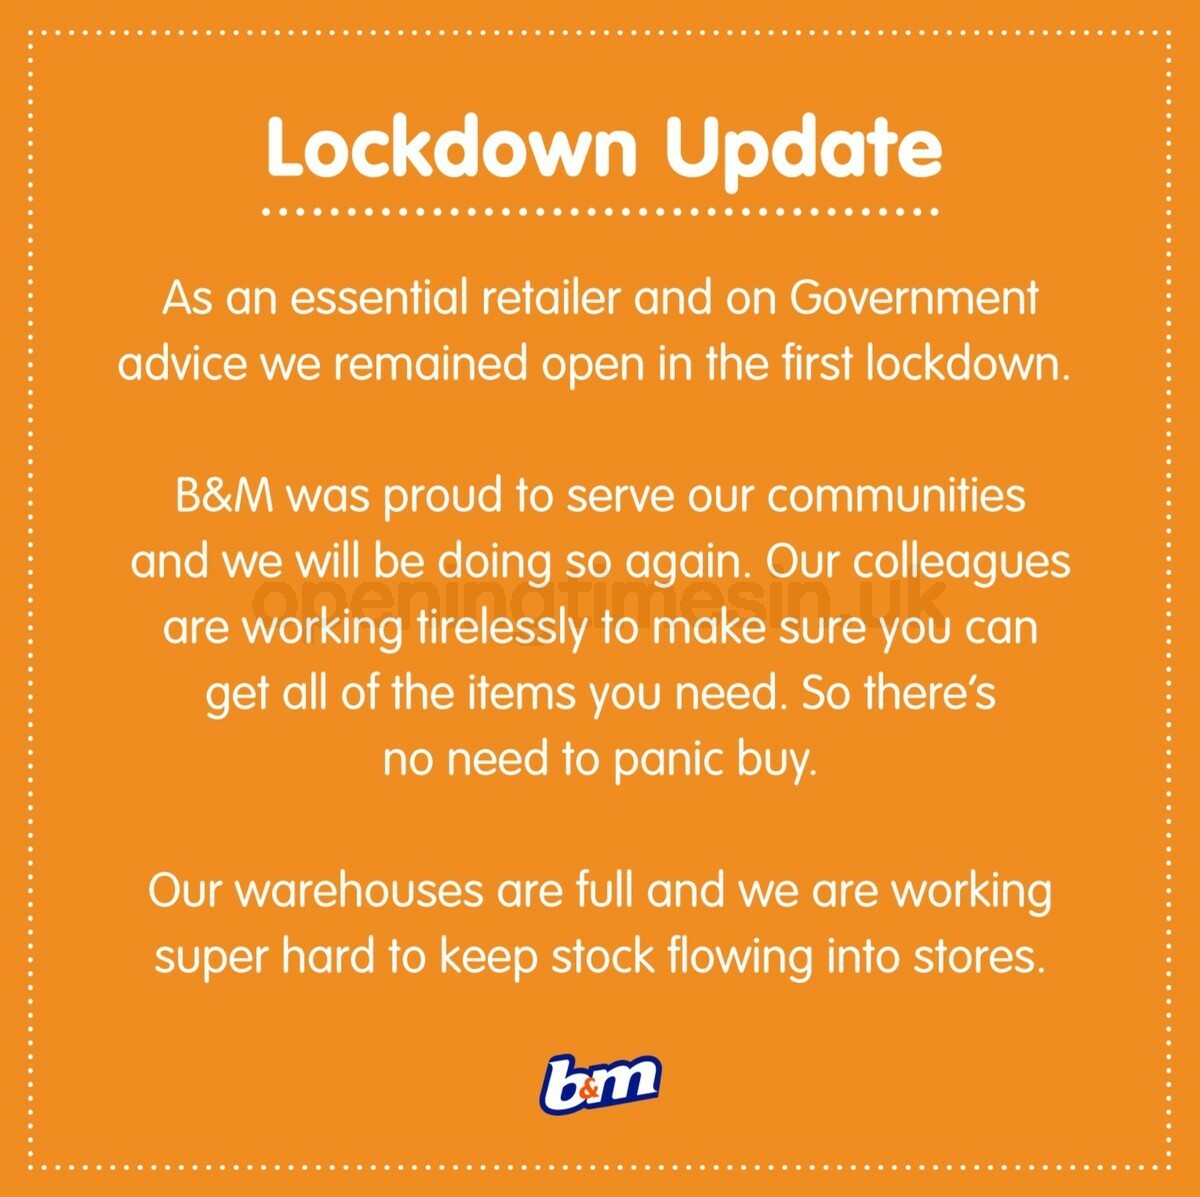 B&M Lockdown Update Offers from November 2